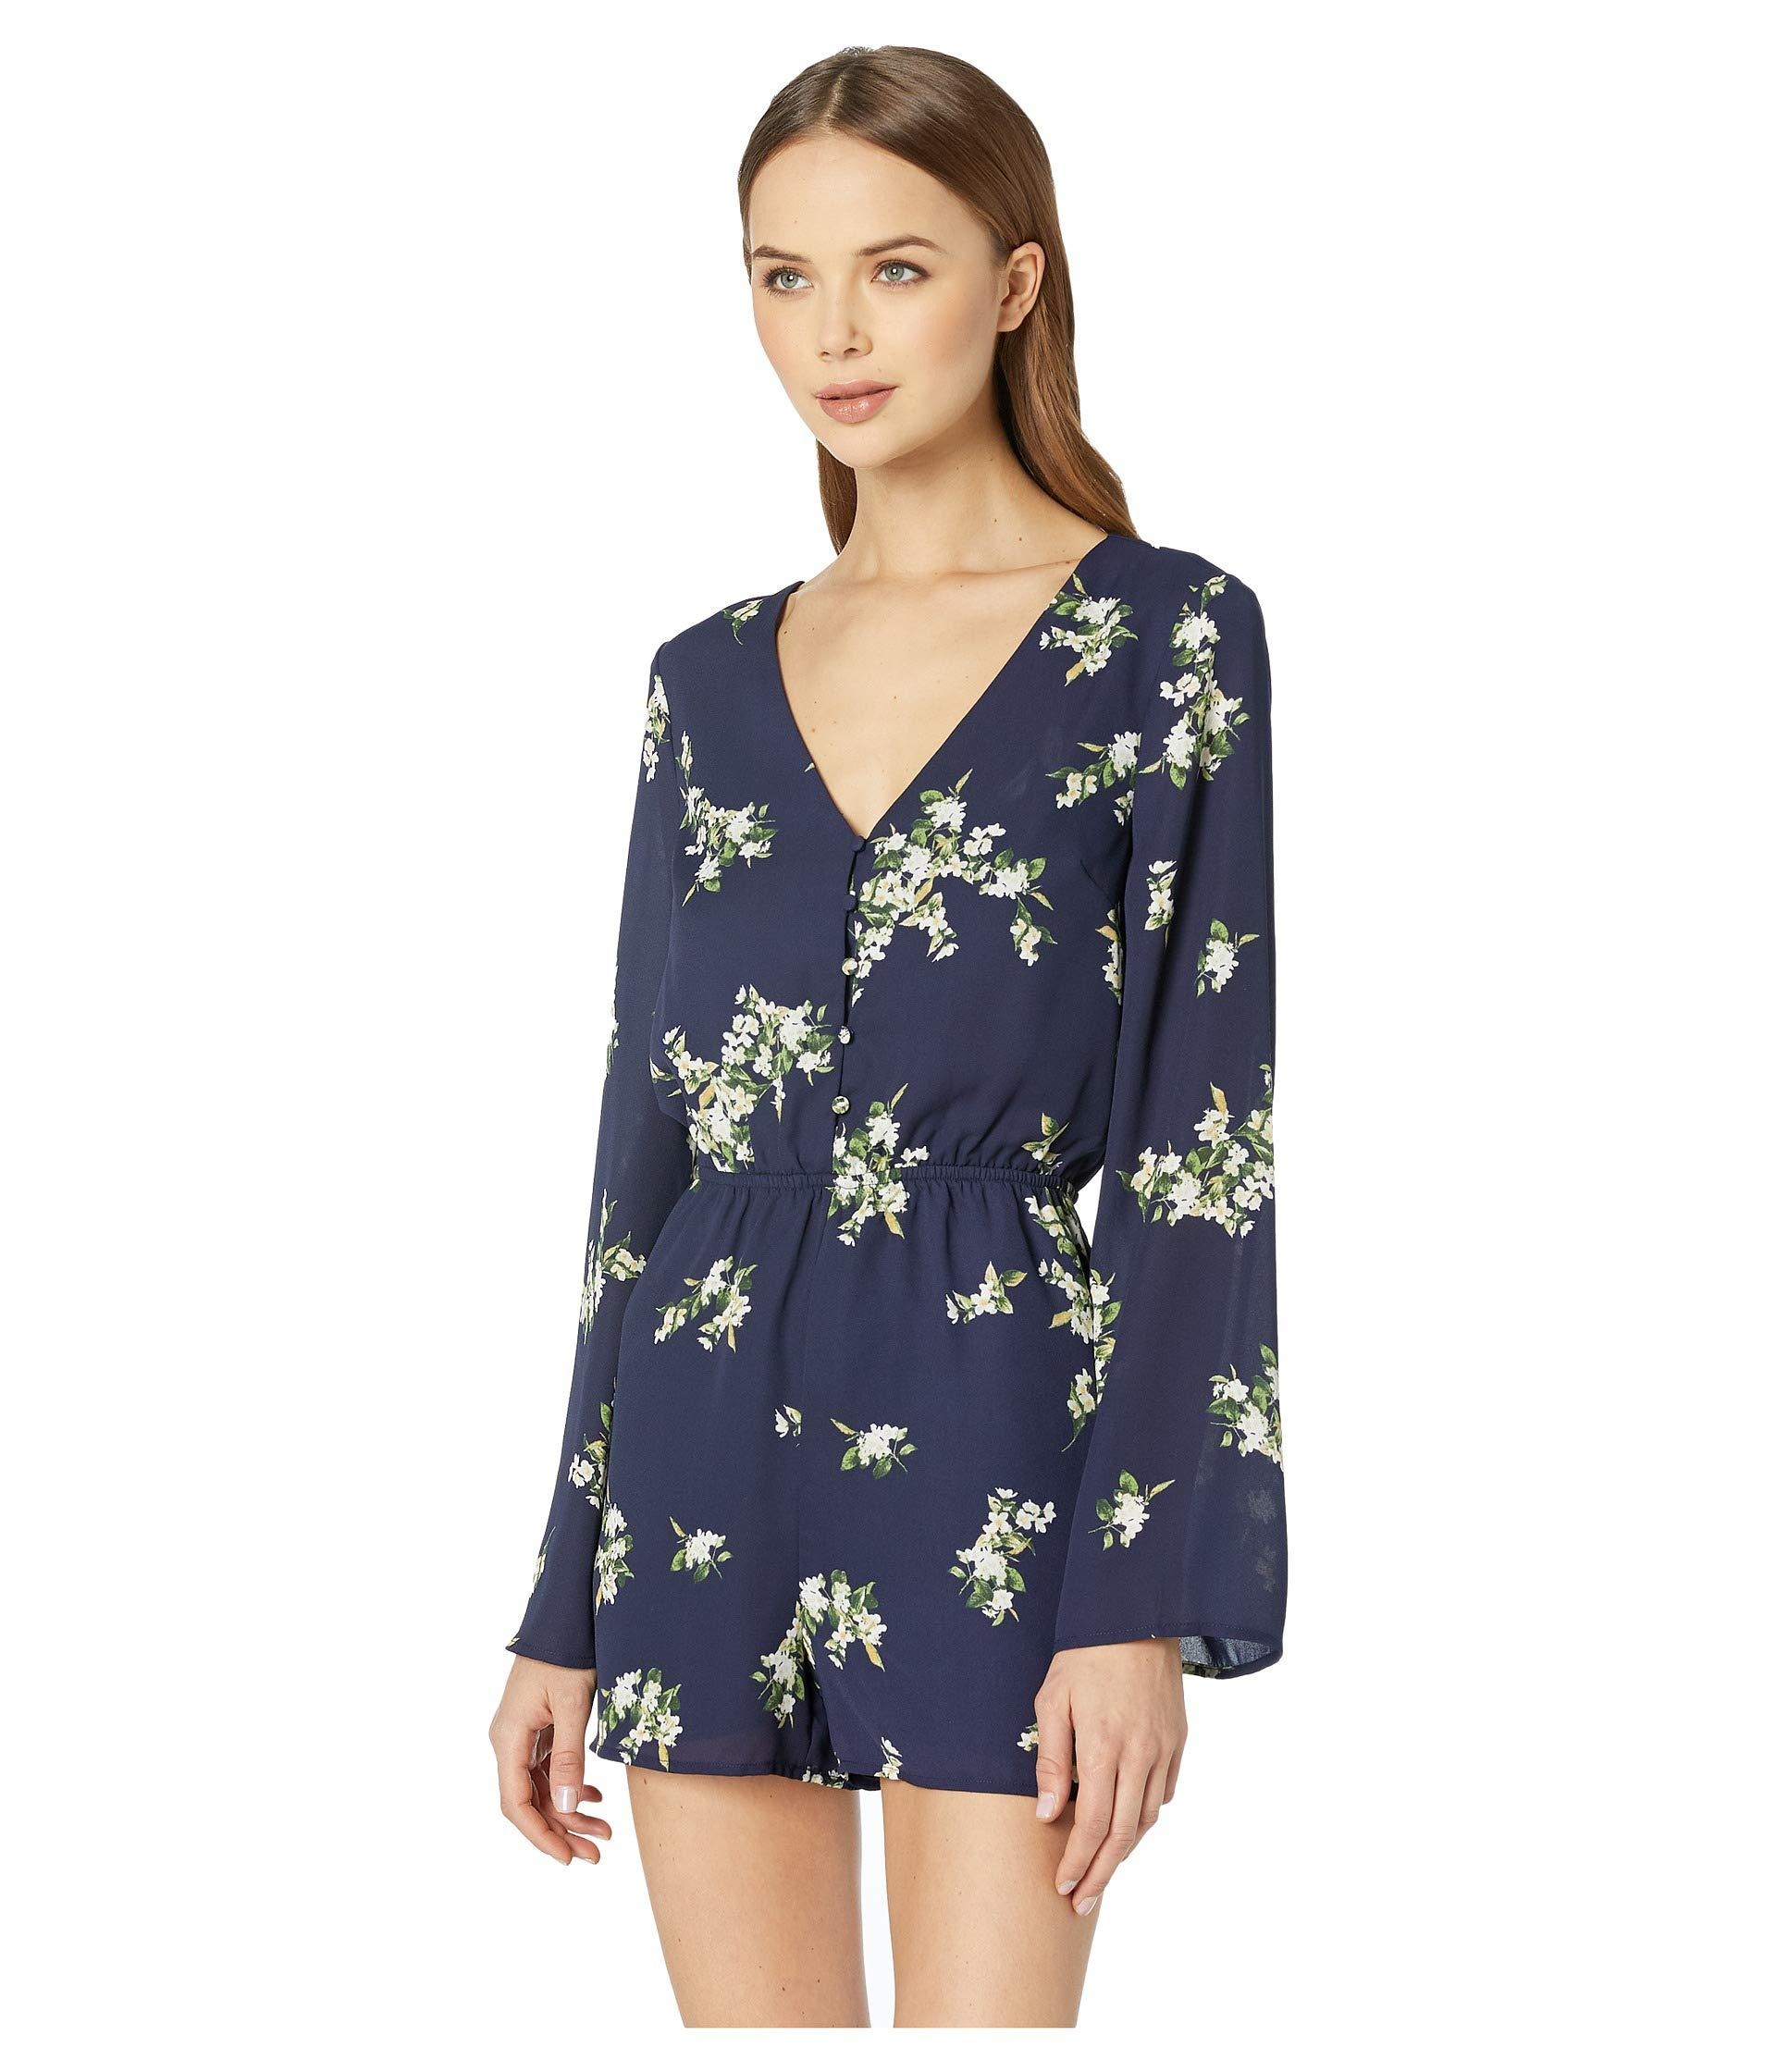 ae73fa6e5969 Lyst - Cupcakes And Cashmere Dorene Romper in Blue